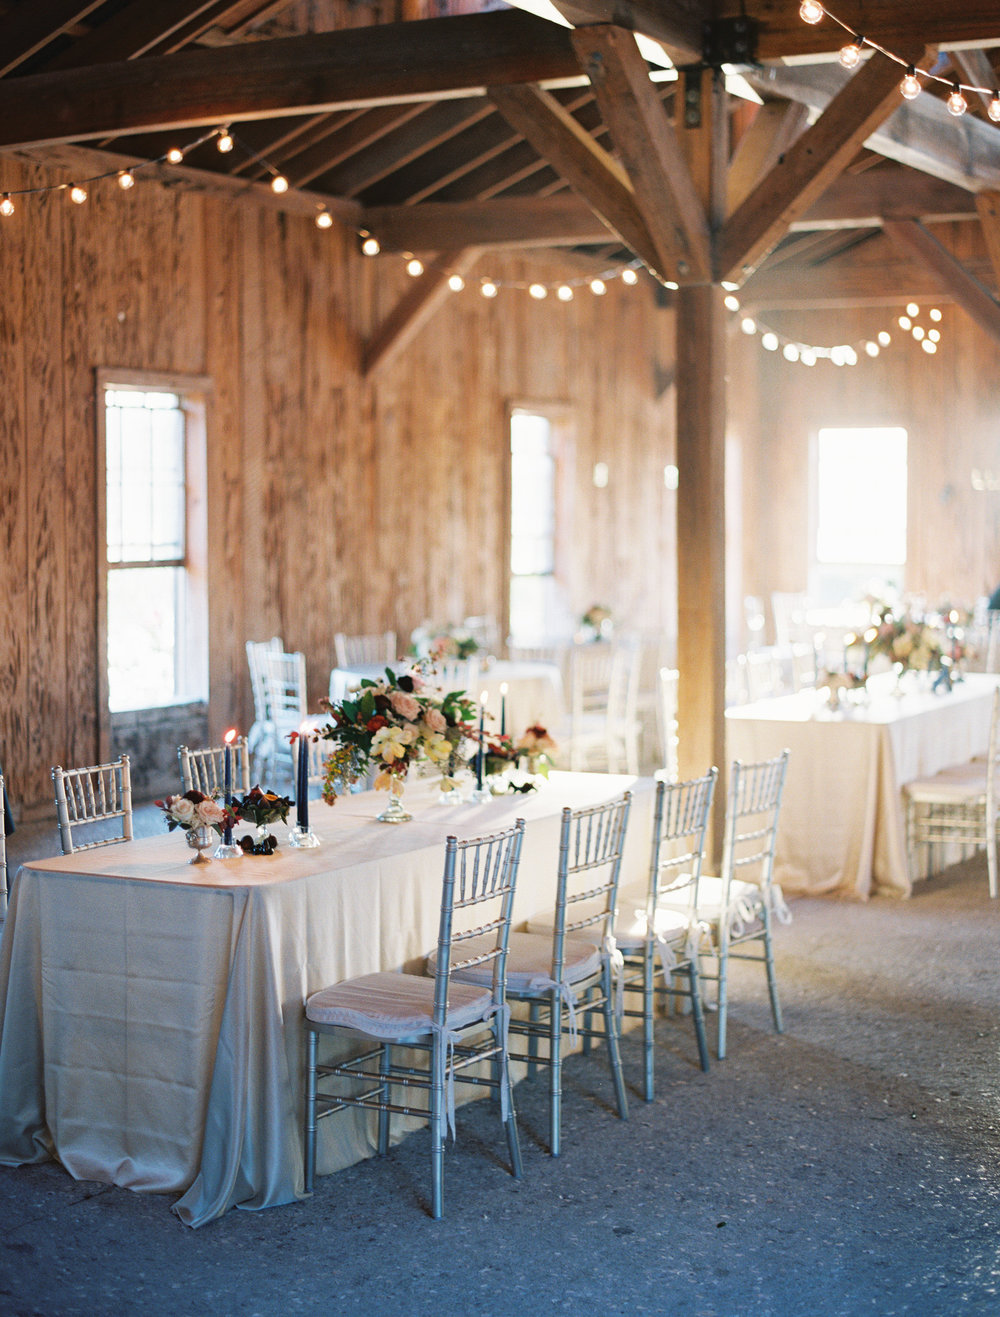 Wedding reception at Boone Hall Plantation's Cotton Dock photographed by Landon Jacob  //  A Lowcountry Wedding Magazine